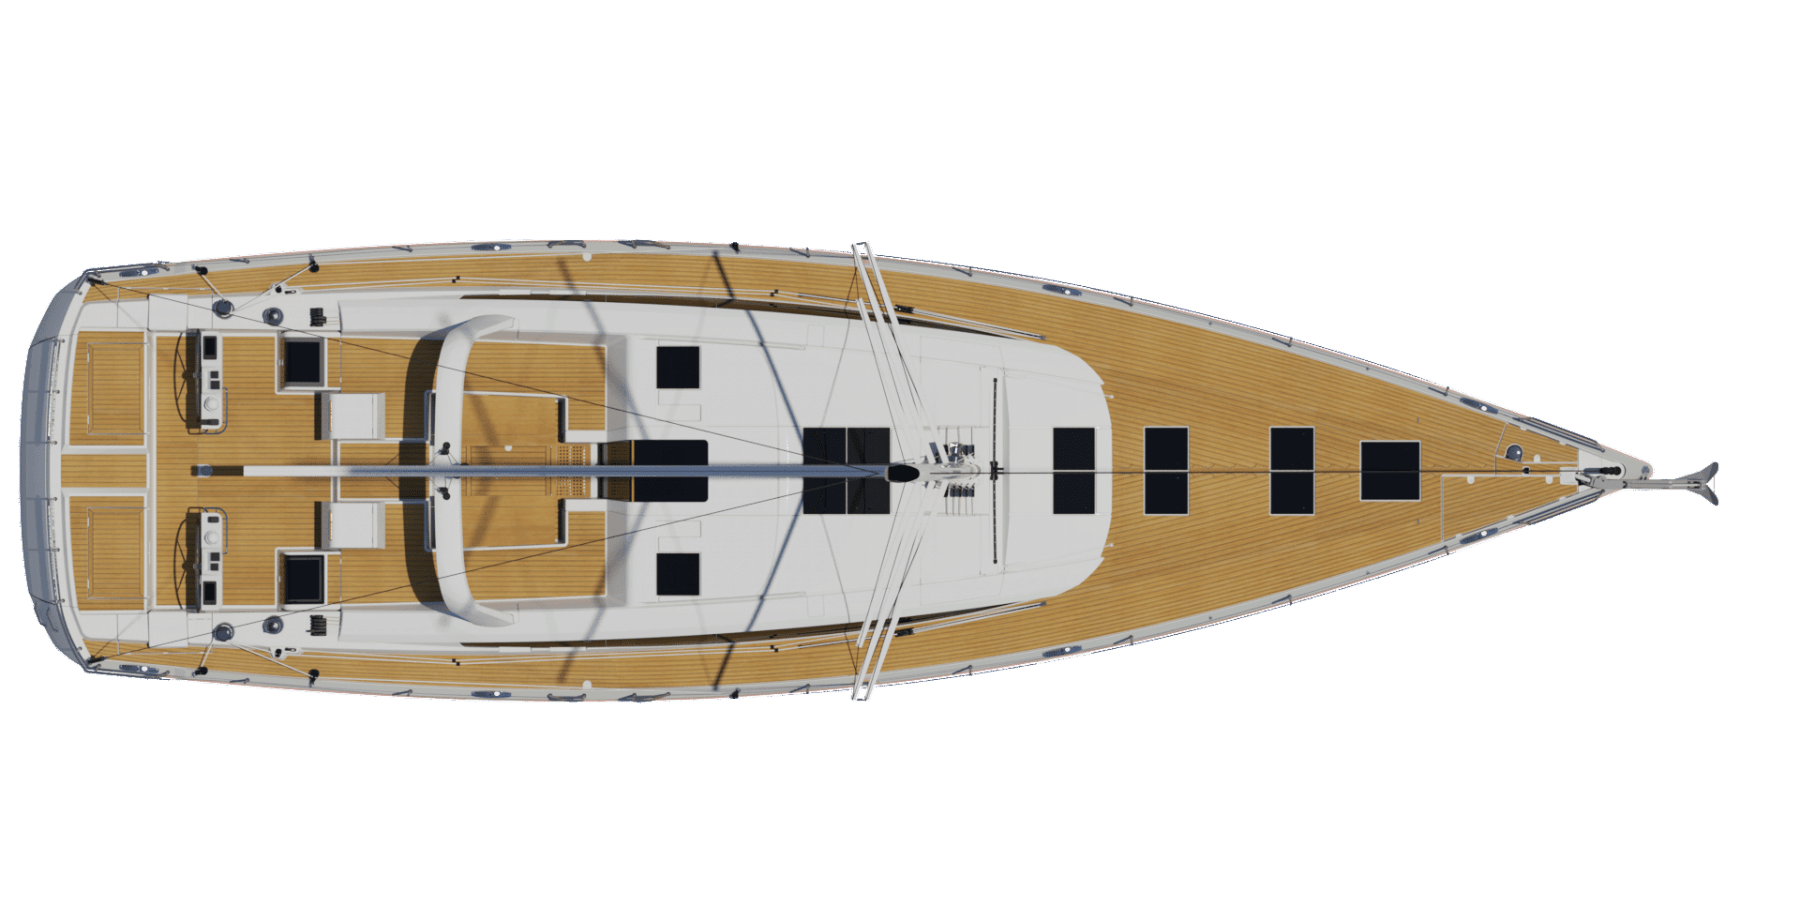 Jeanneau-64-layout-3-charter-ownership-yacht